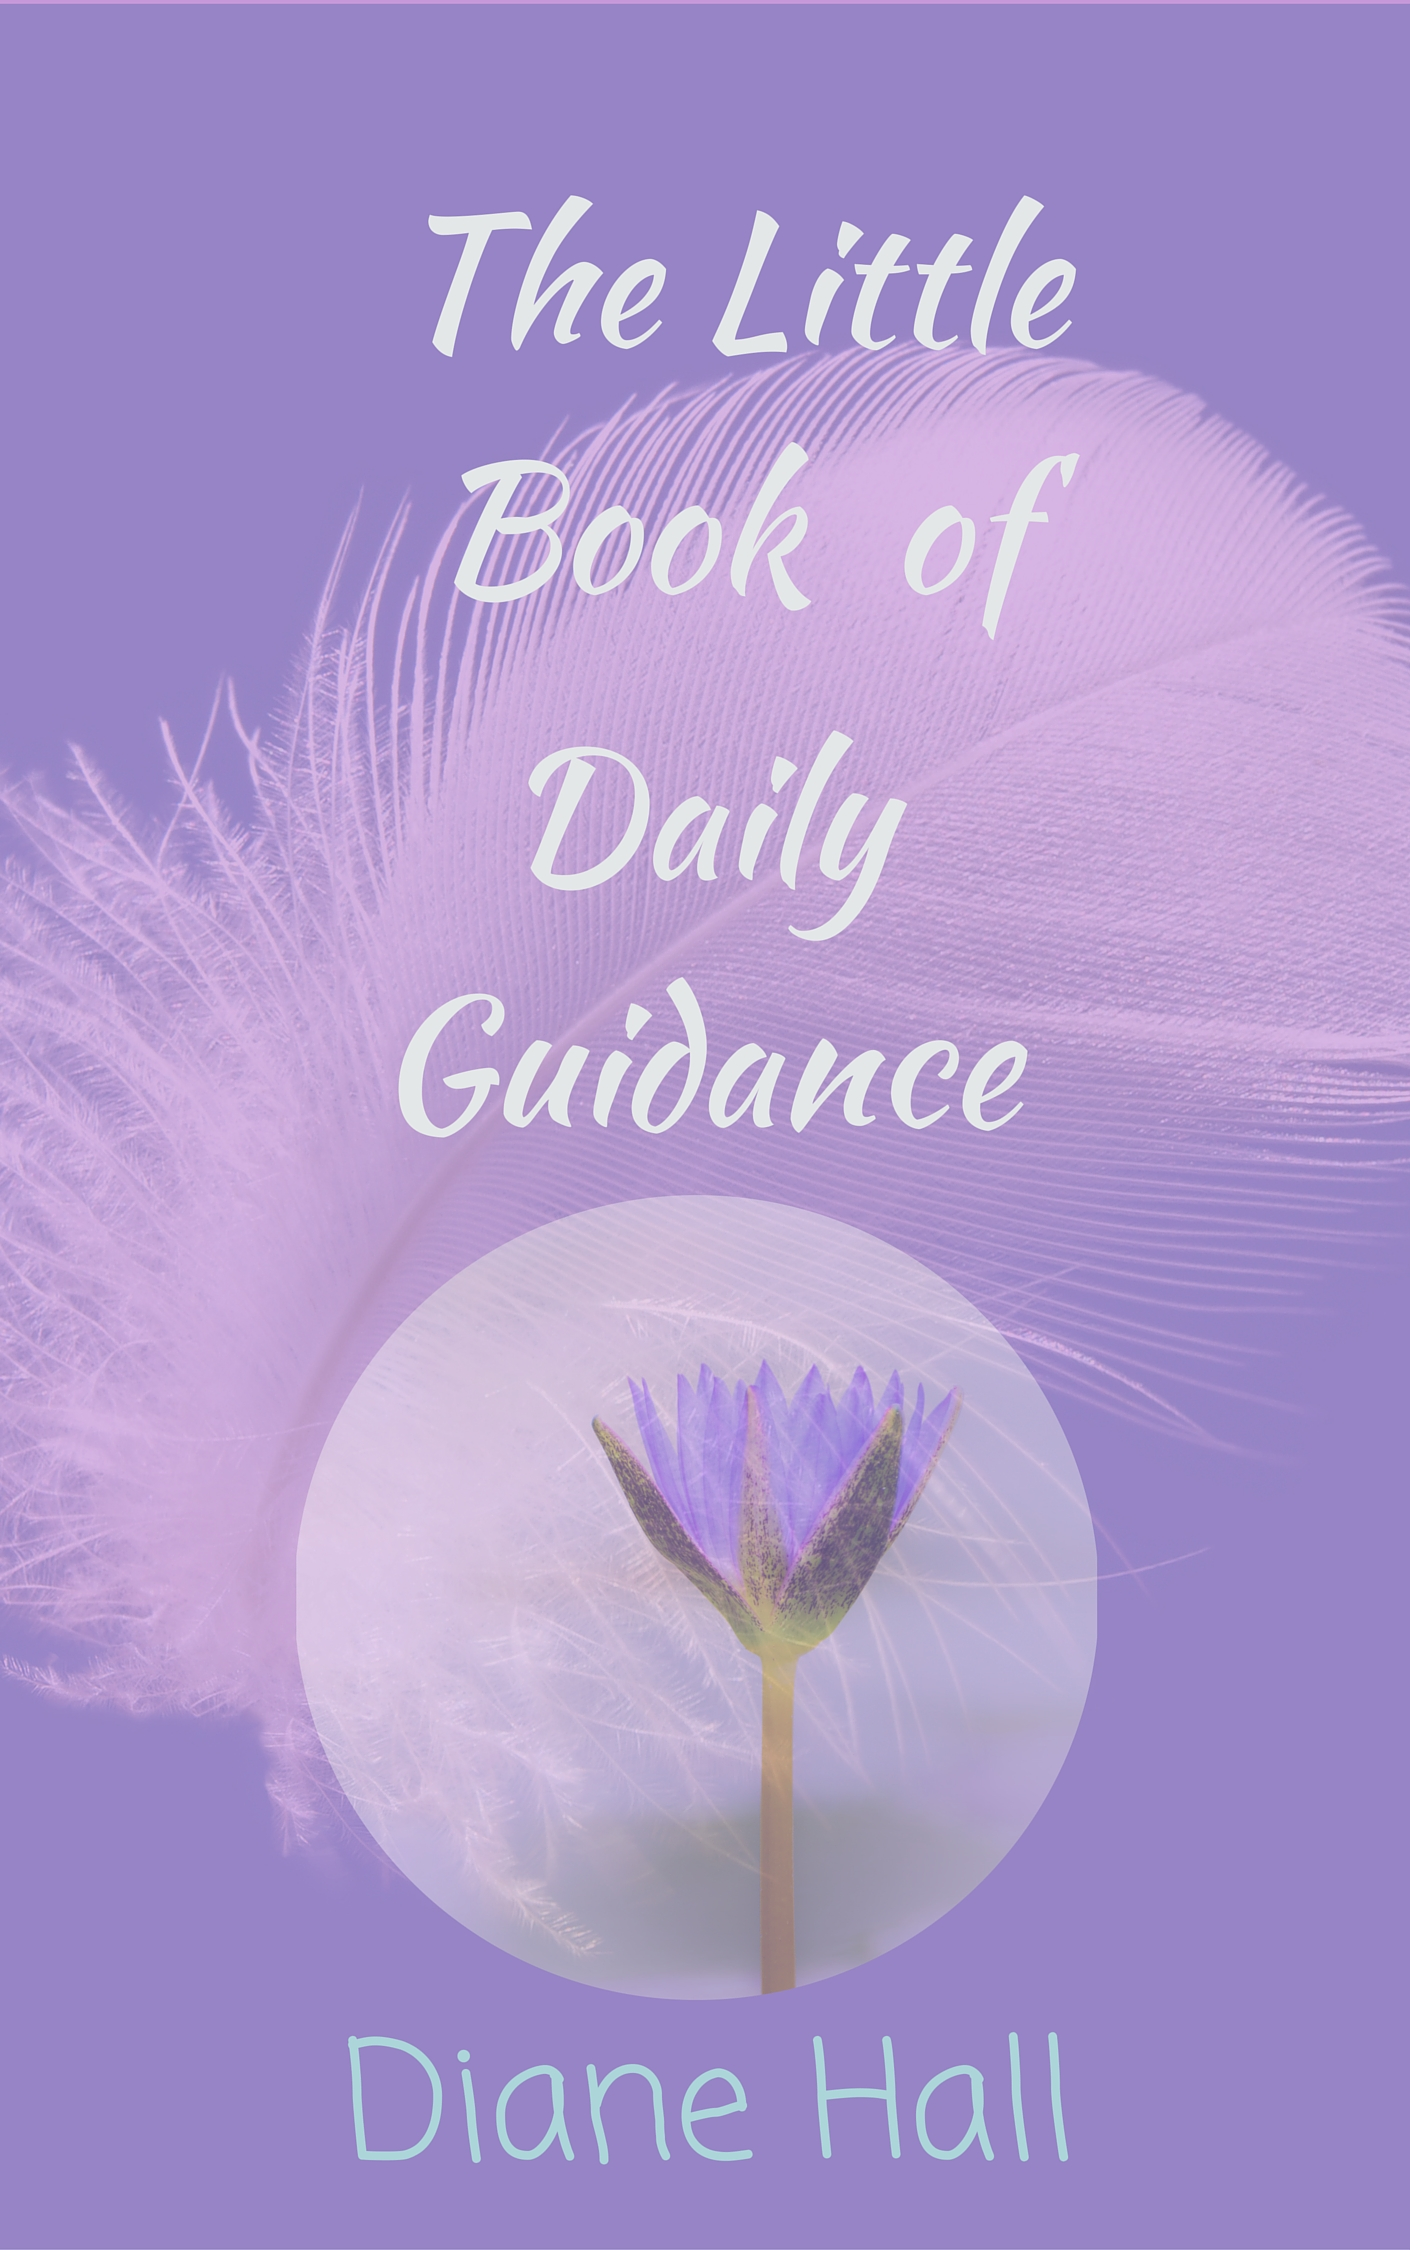 The Little Book of Daily Guidance